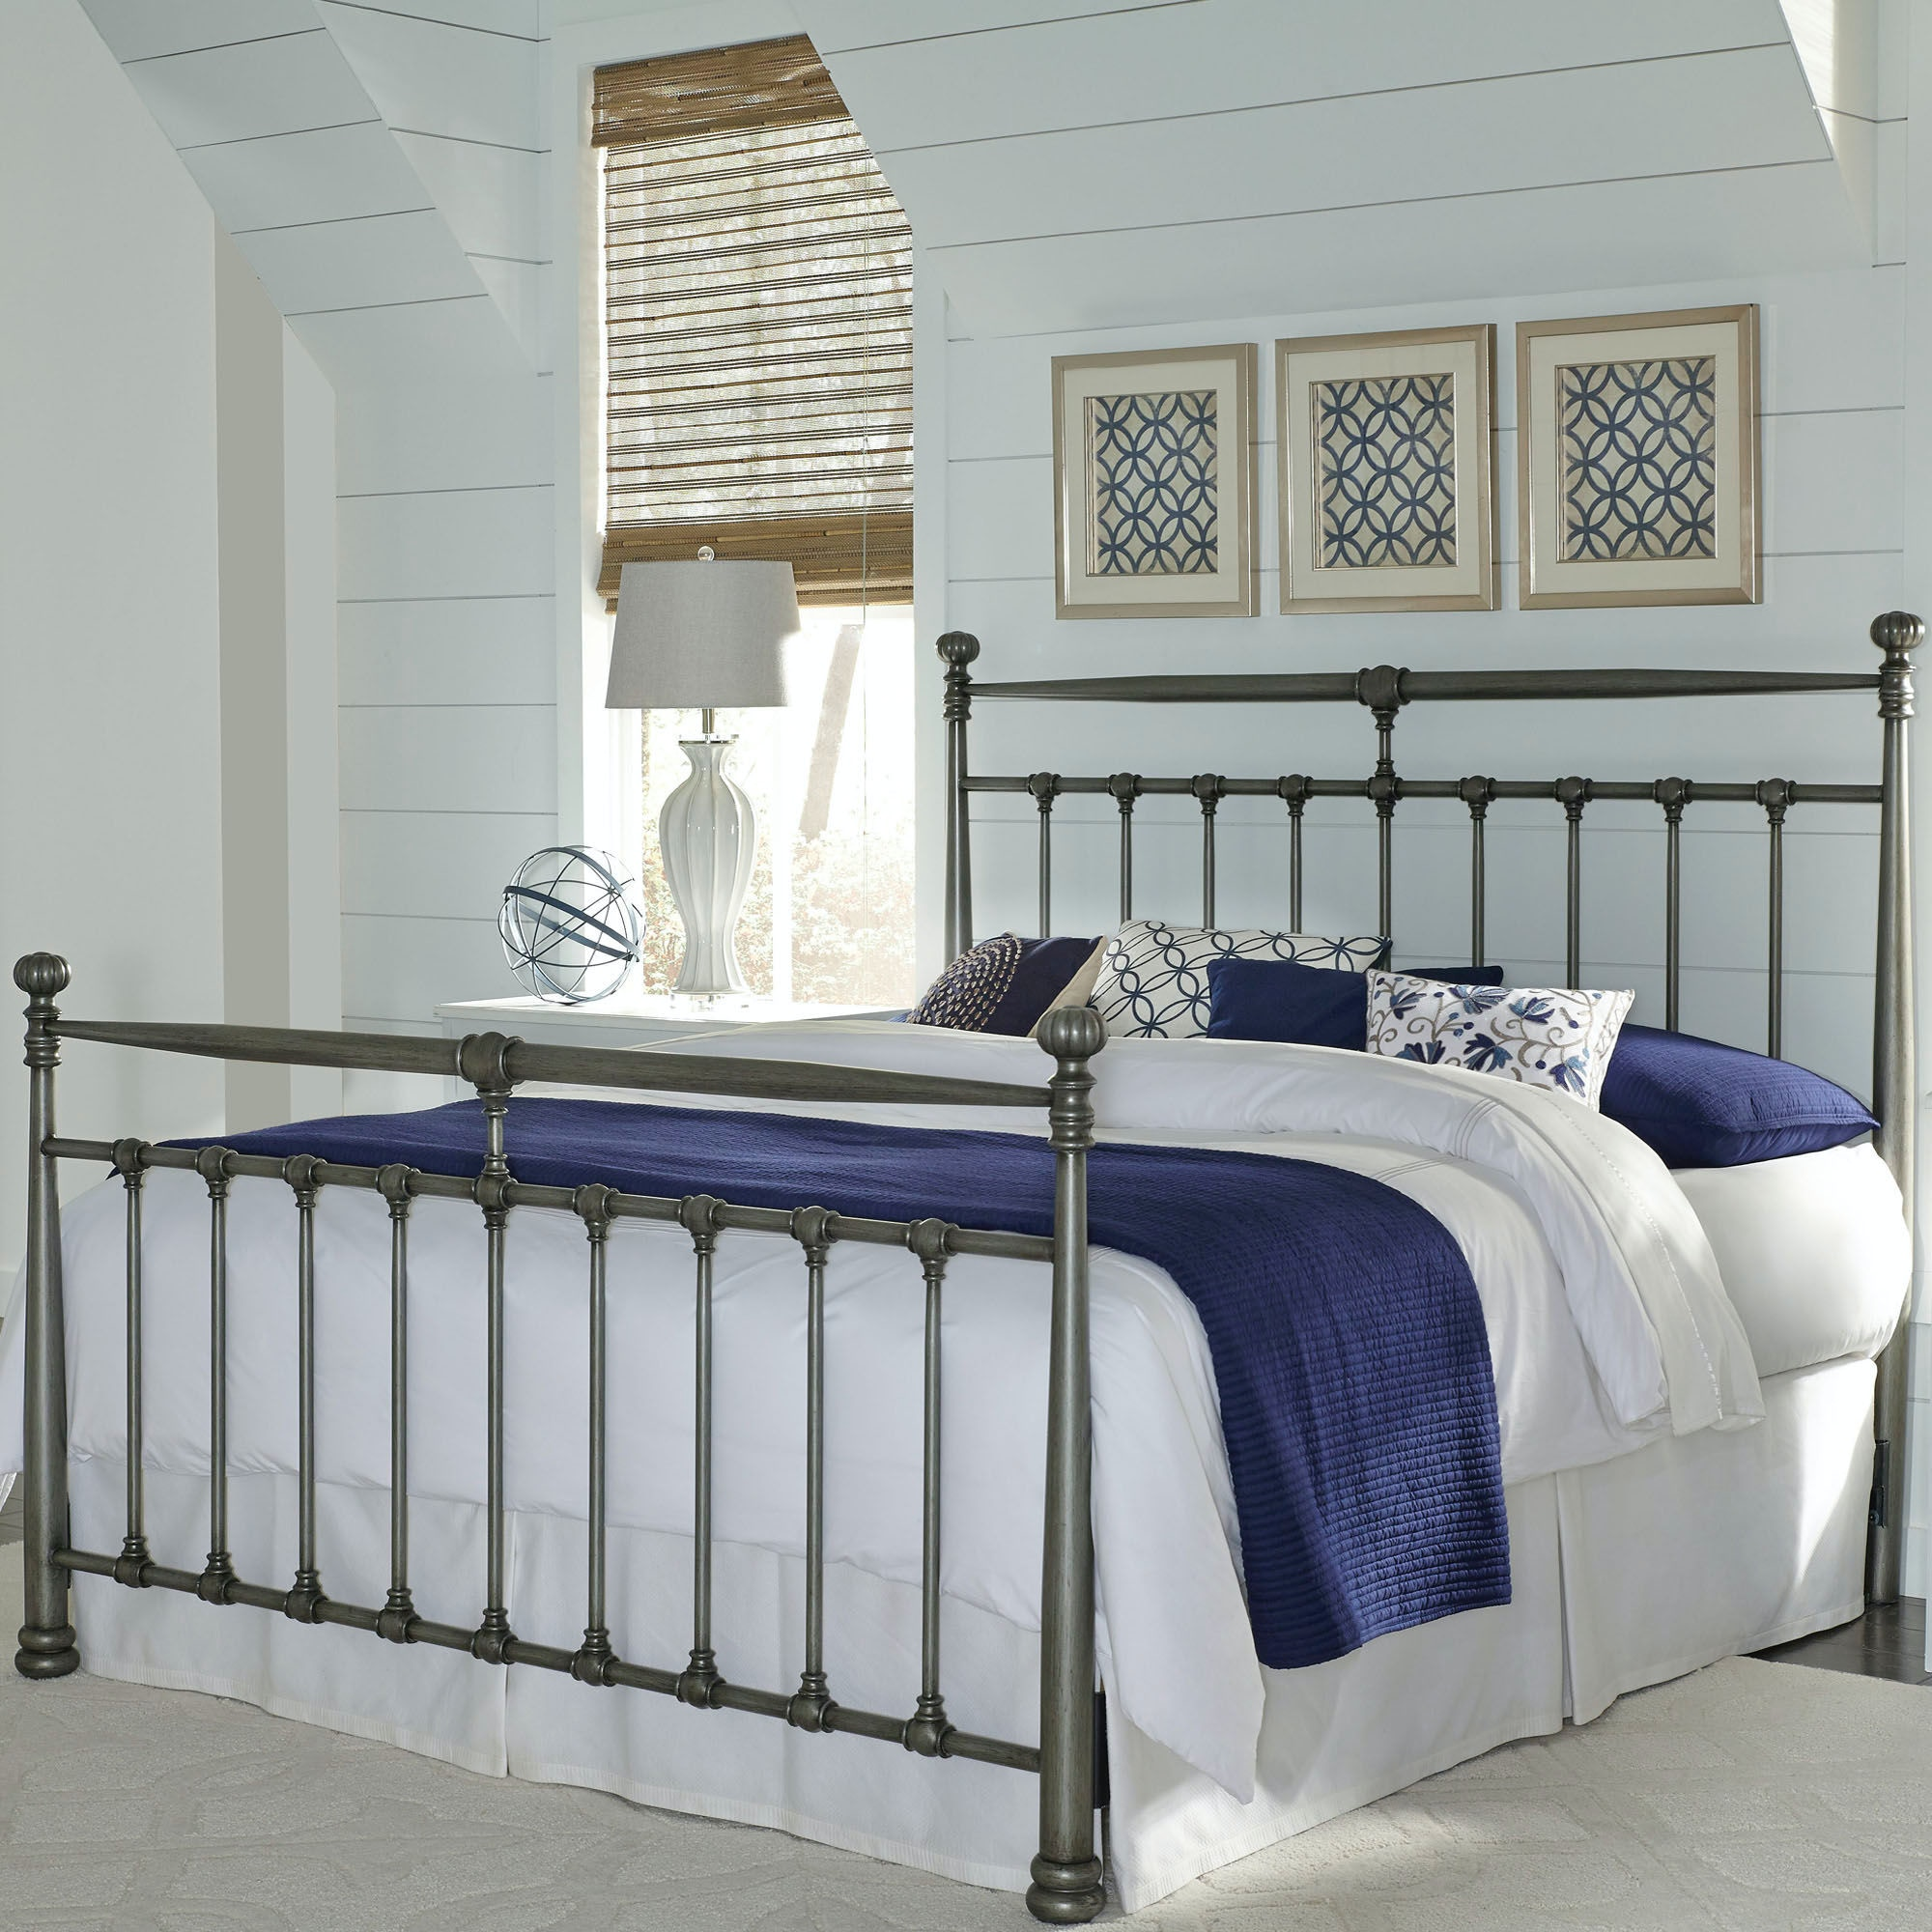 Fashion Bed Group Kensington Metal Headboard And Footboard B10077